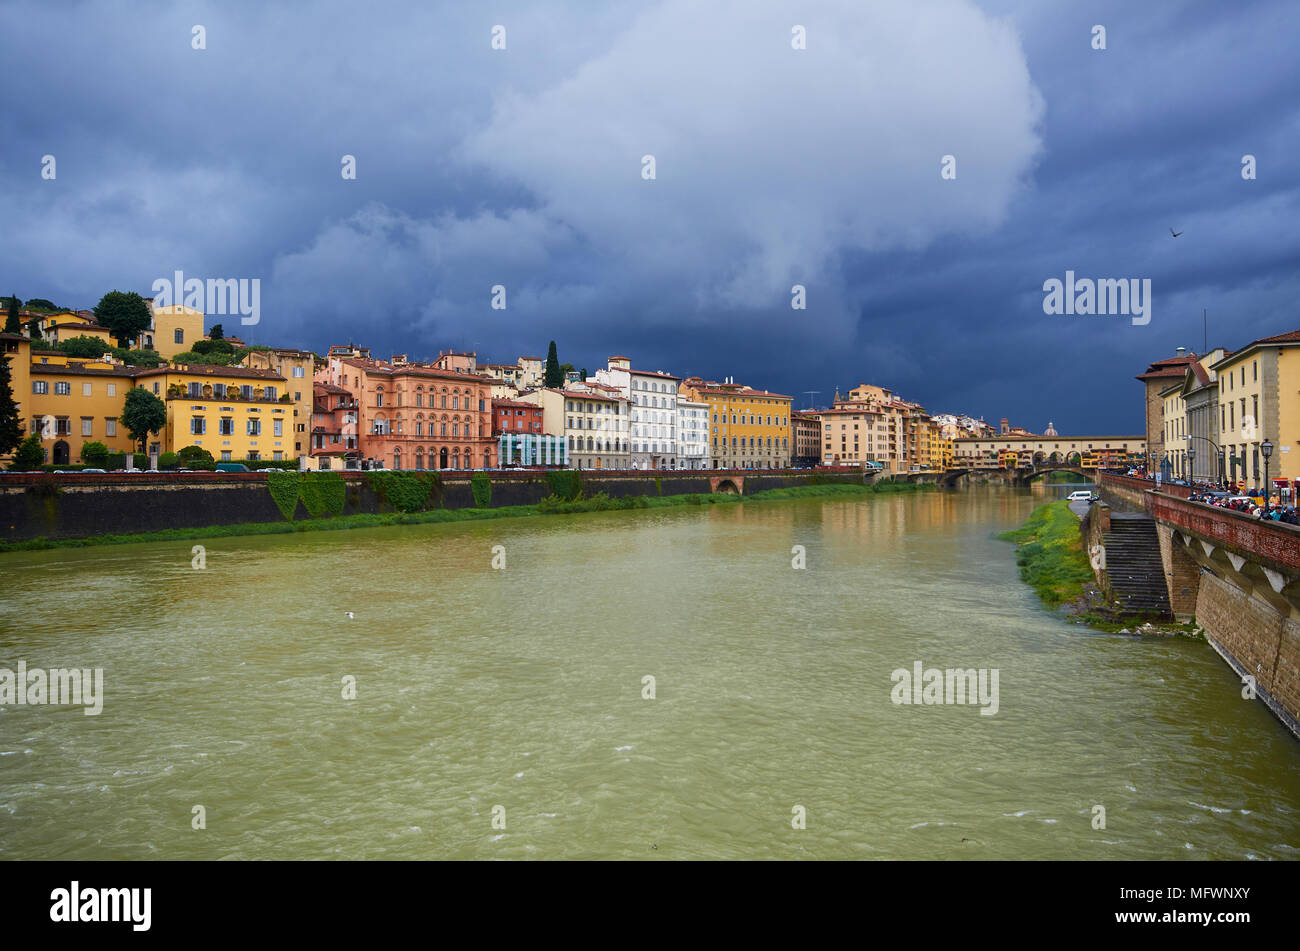 Gathering storm, Arno River, Florence, Italy. - Stock Image